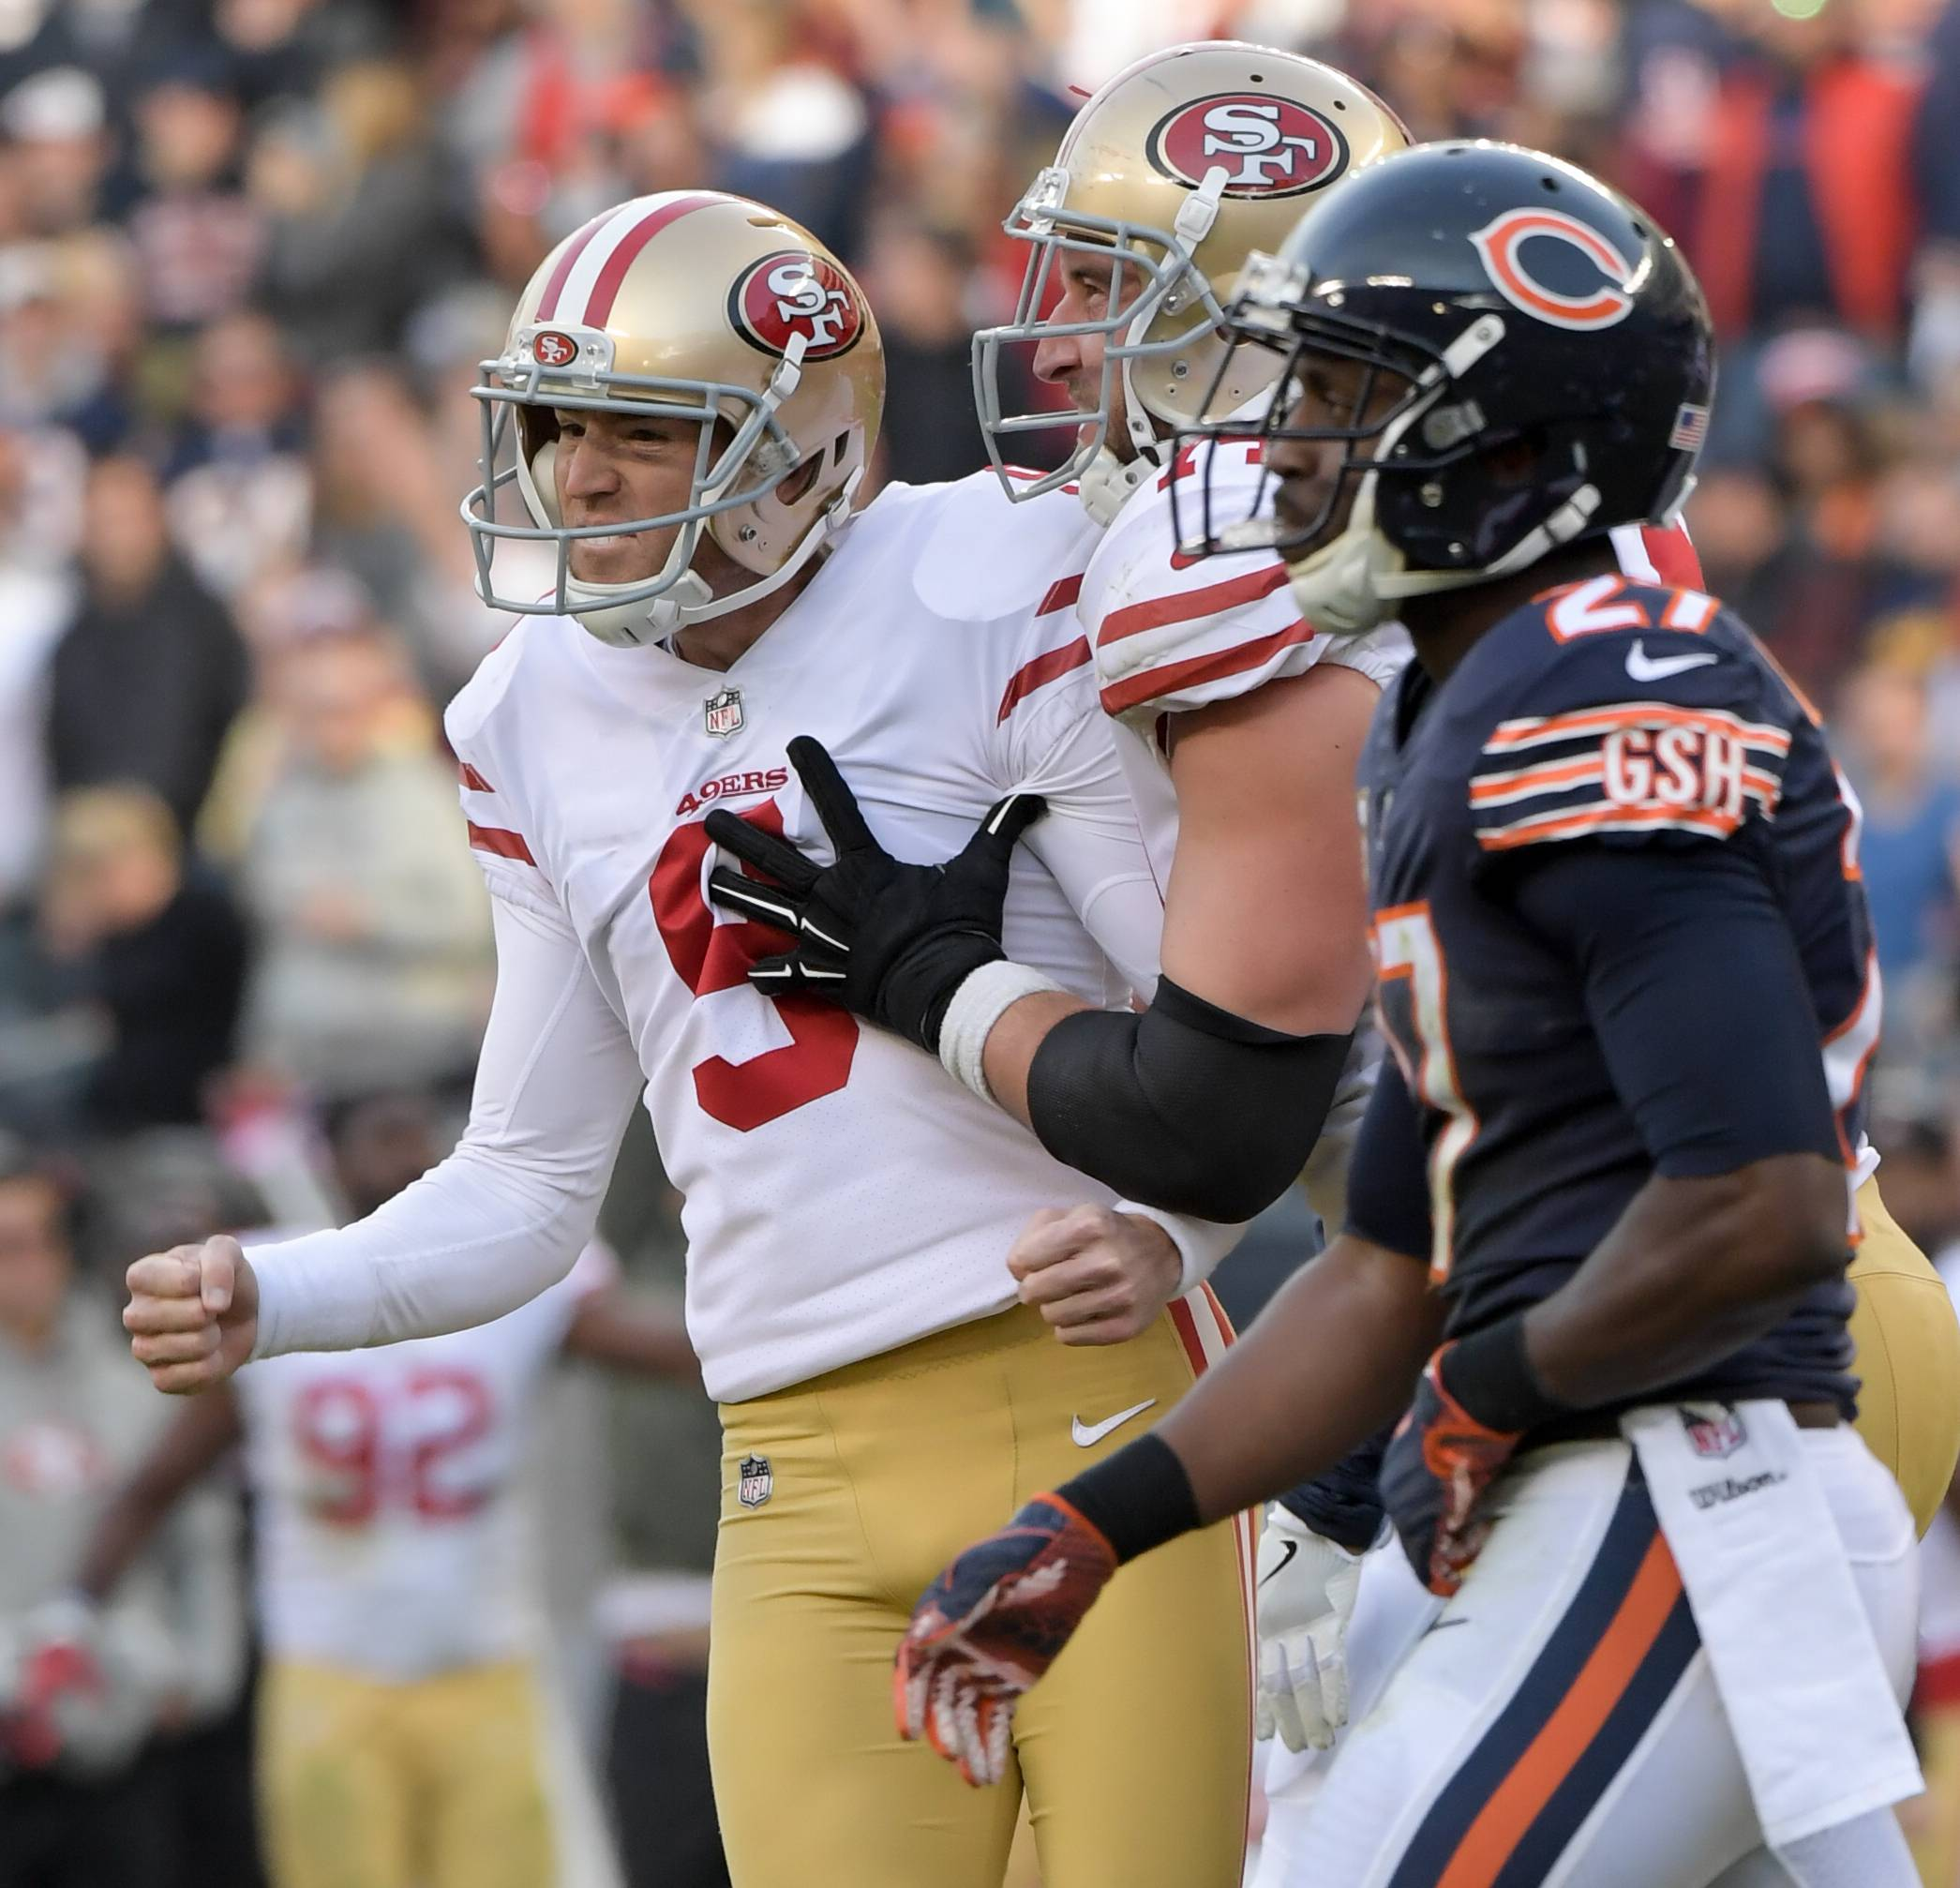 San Francisco 49ers' kicker Robbie Gould (9) celebrates kicking the game winning field goal against the Bears at Soldier Field on December 3, 2017.